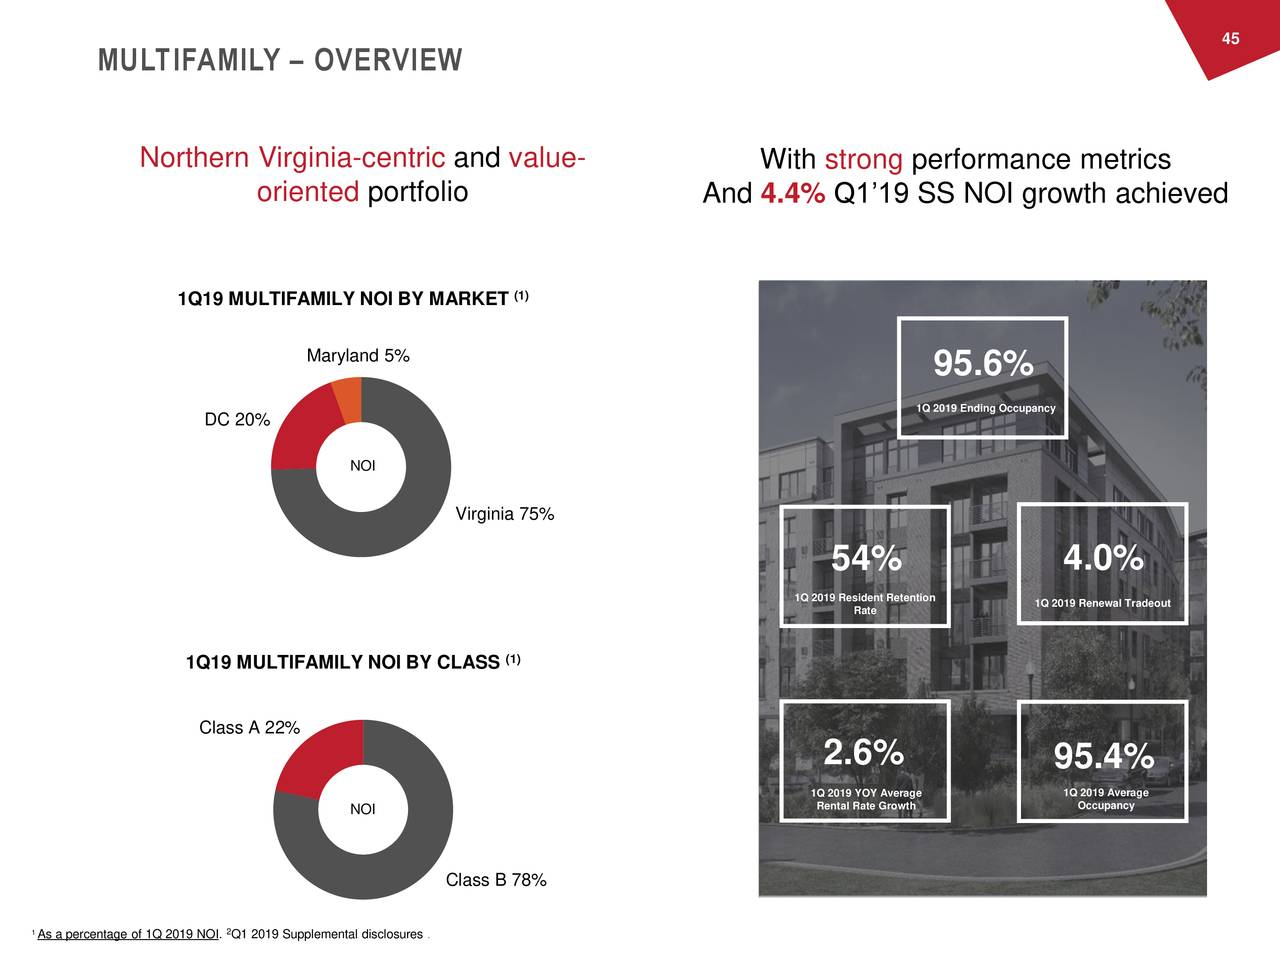 MULTIFAMILY – OVERVIEW Northern Virginia-centric and value- With strong performance metrics oriented portfolio And 4.4% Q1'19 SS NOI growth achieved (1) 1Q19 MULTIFAMILY NOI BY MARKET Maryland 5% 95.6% 1Q 2019 Ending Occupancy DC 20% NOI Virginia 75% 54% 4.0% 1Q 201Ratesident Retentio1Q 2019 Renewal Tradeout 1Q19 MULTIFAMILY NOI BY CLASS (1) Class A 22% 2.6% 95.4% 1Q 2019 YOY Average 1Q 2019 Average NOI Rental Rate Growth Occupancy Class B 78% 1As a percentage of 1Q 2019 NOI. Q1 2019 Supplemental disclosures .